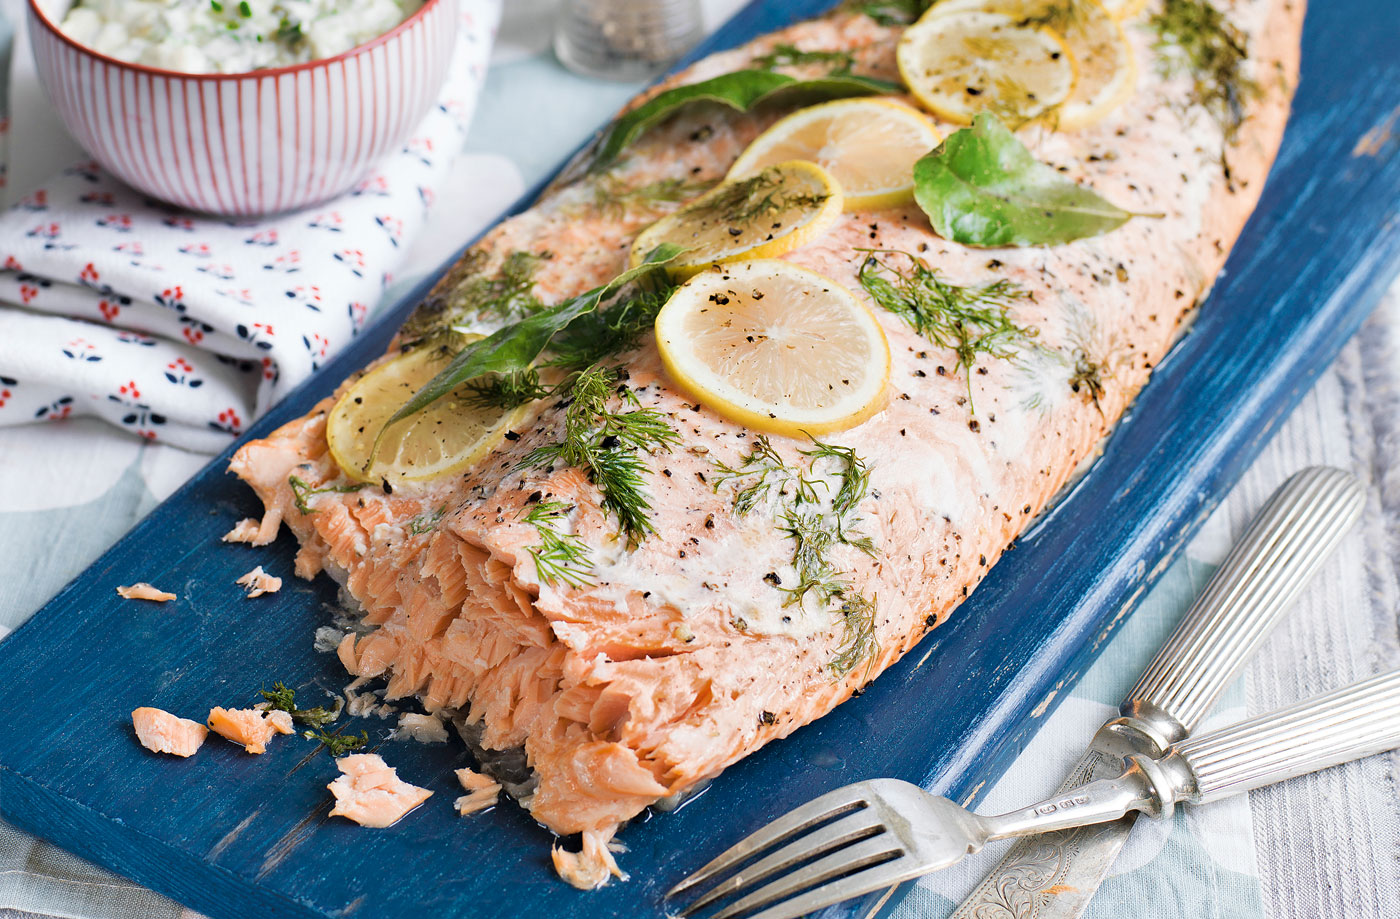 Dill lemon salmon